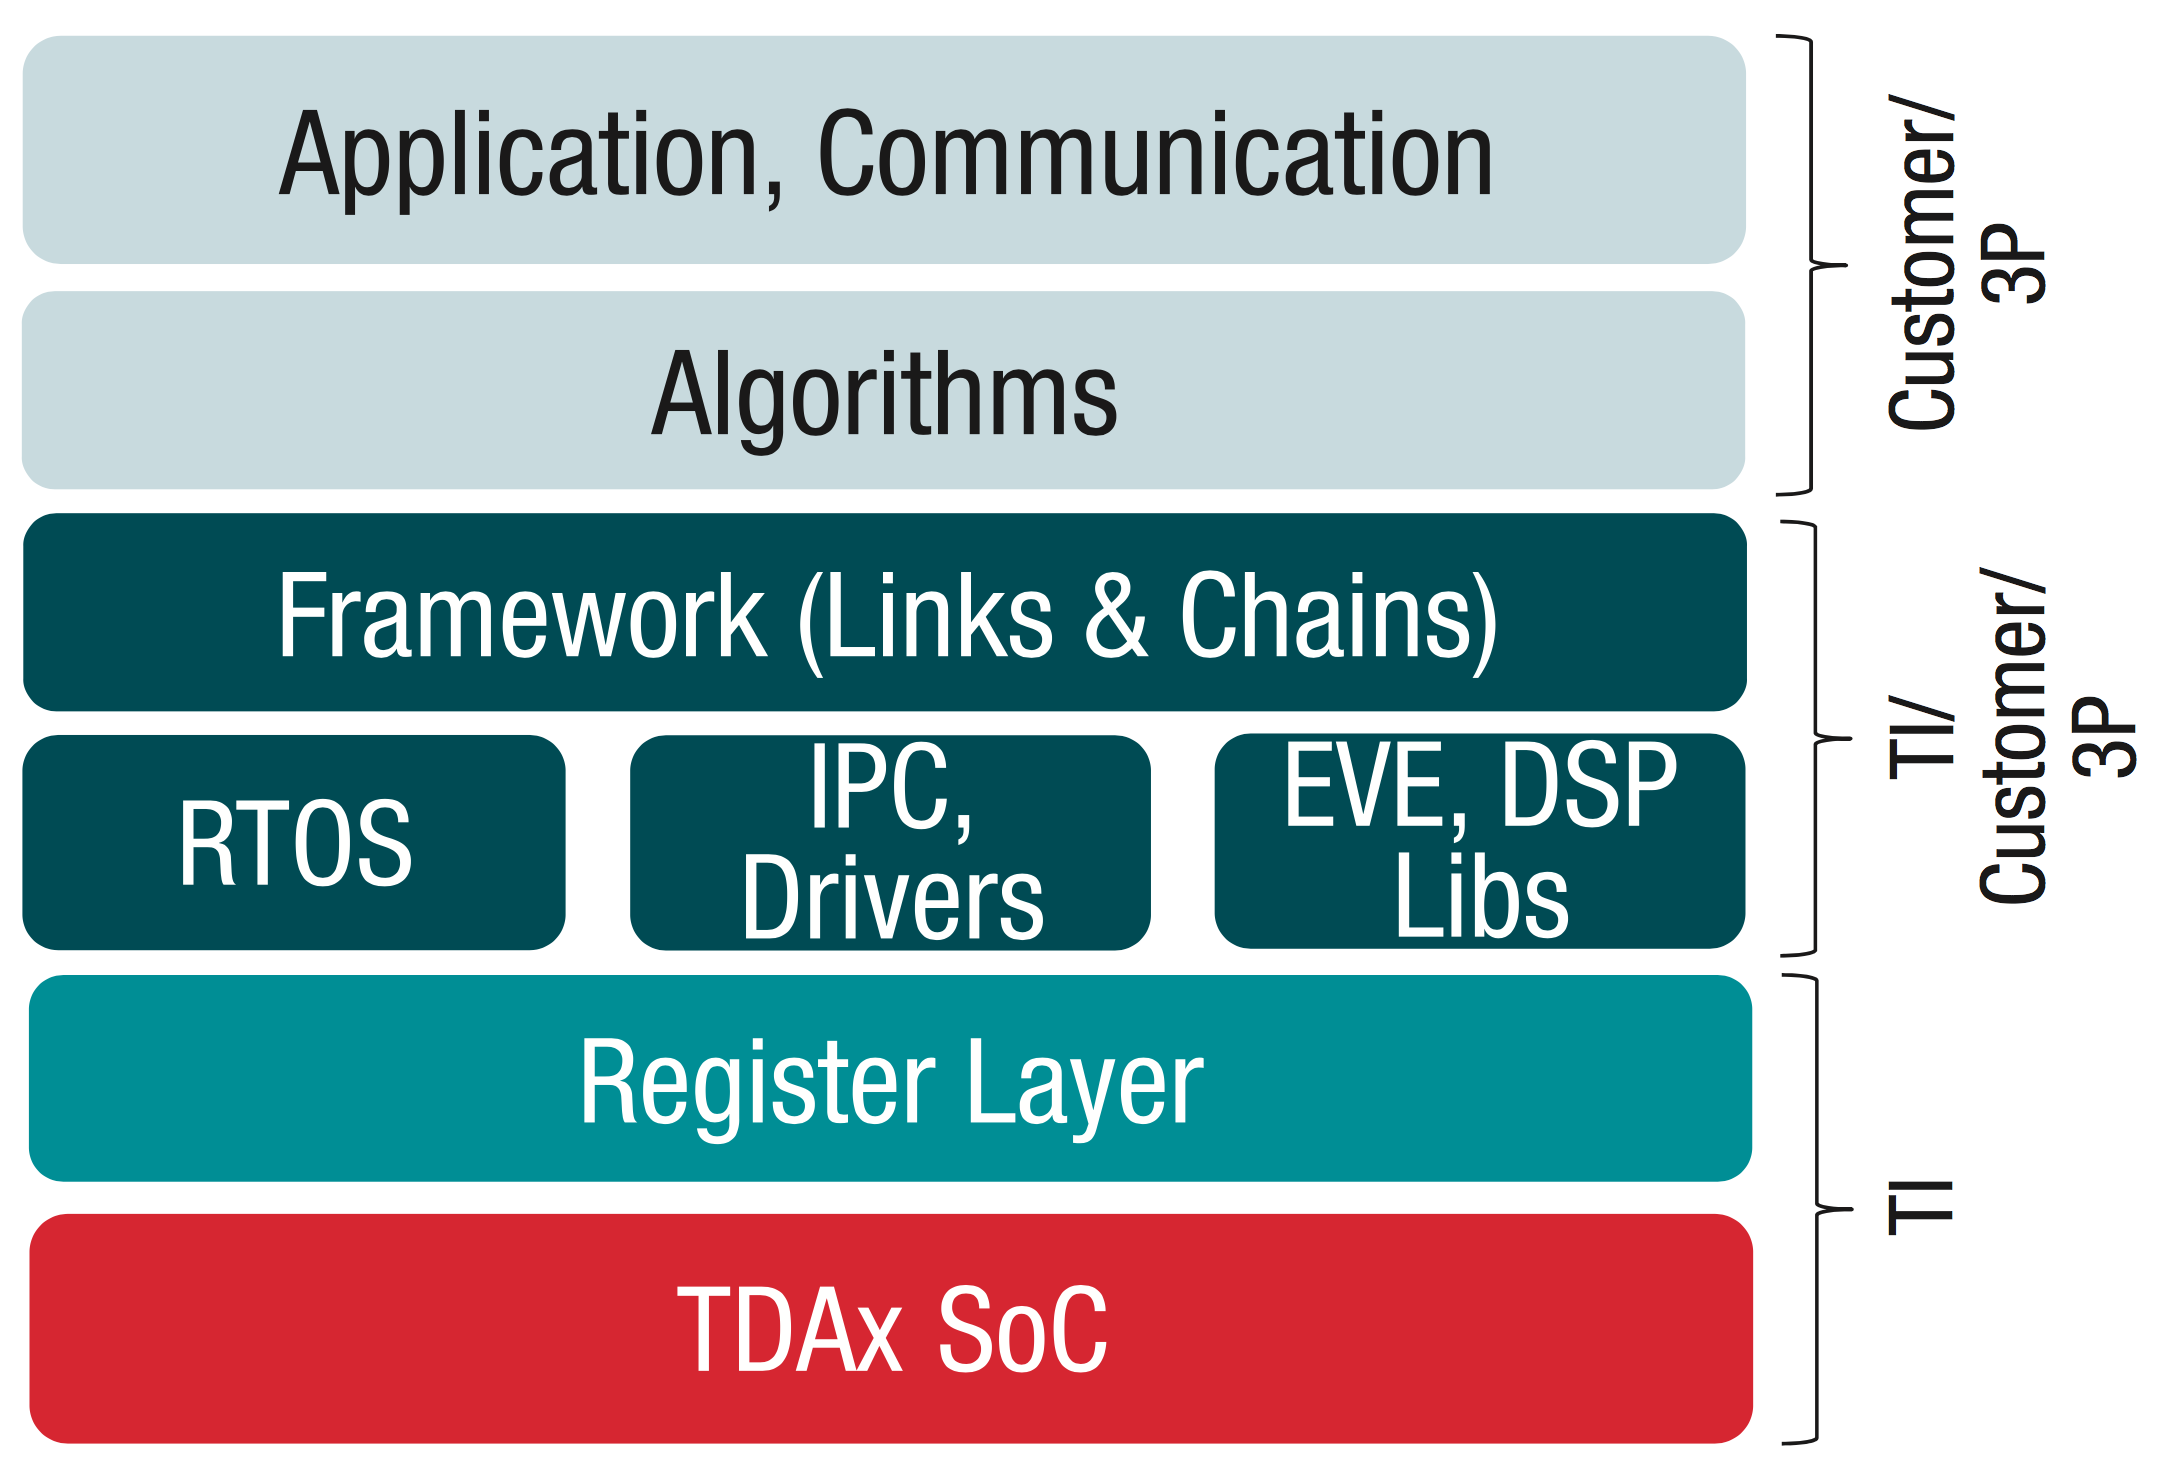 TI Vision SDK, Optimized Vision Libraries for ADAS Systems